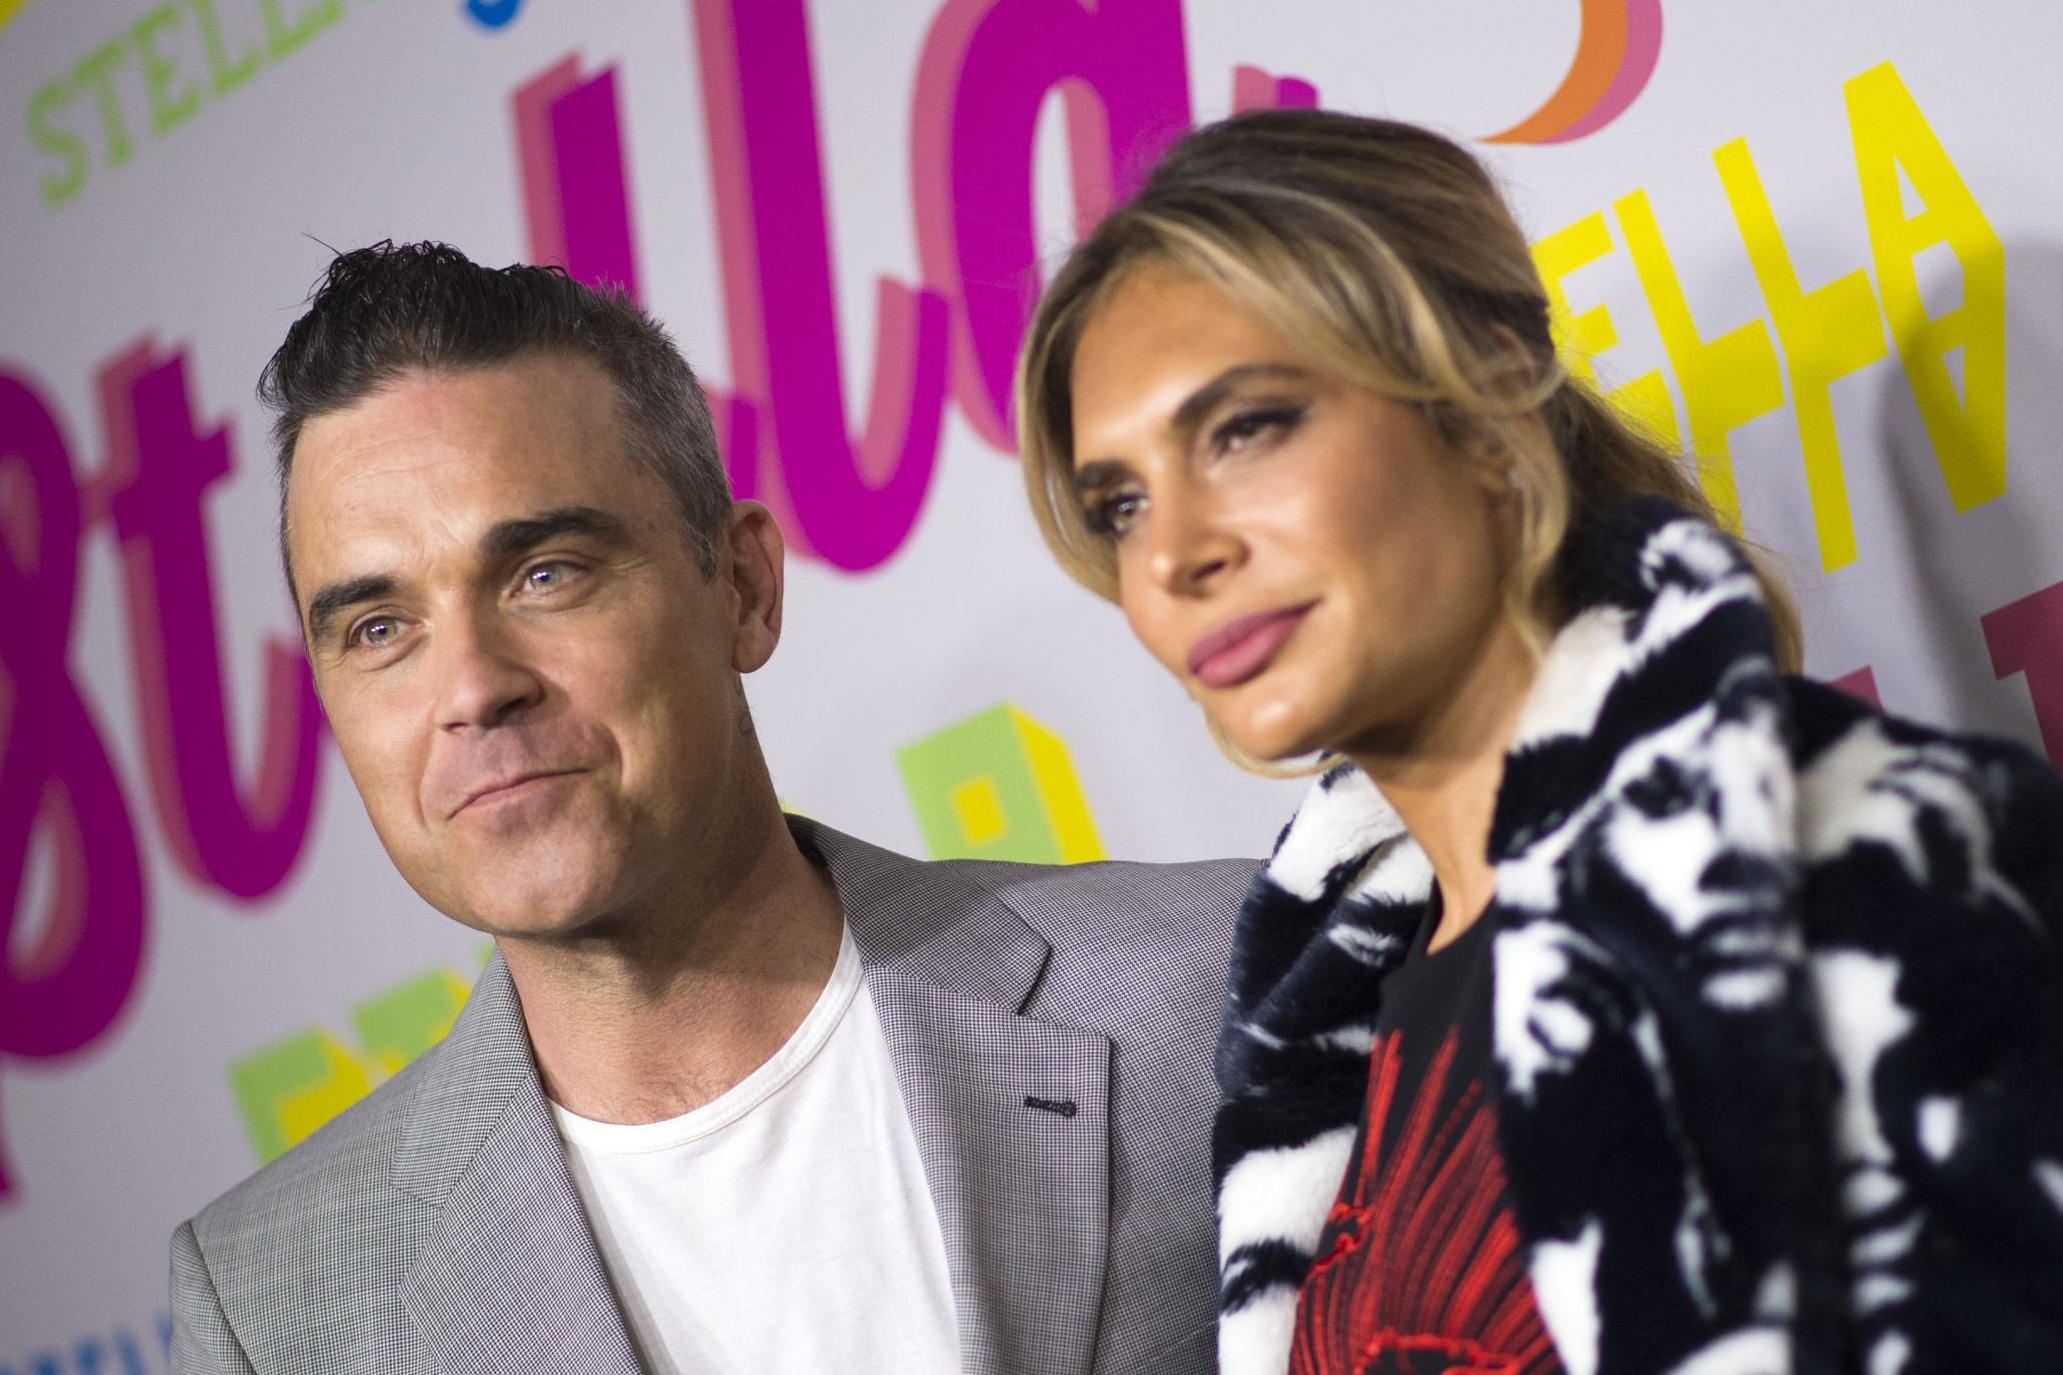 Robbie Williams and Ayda Field exit The X Factor